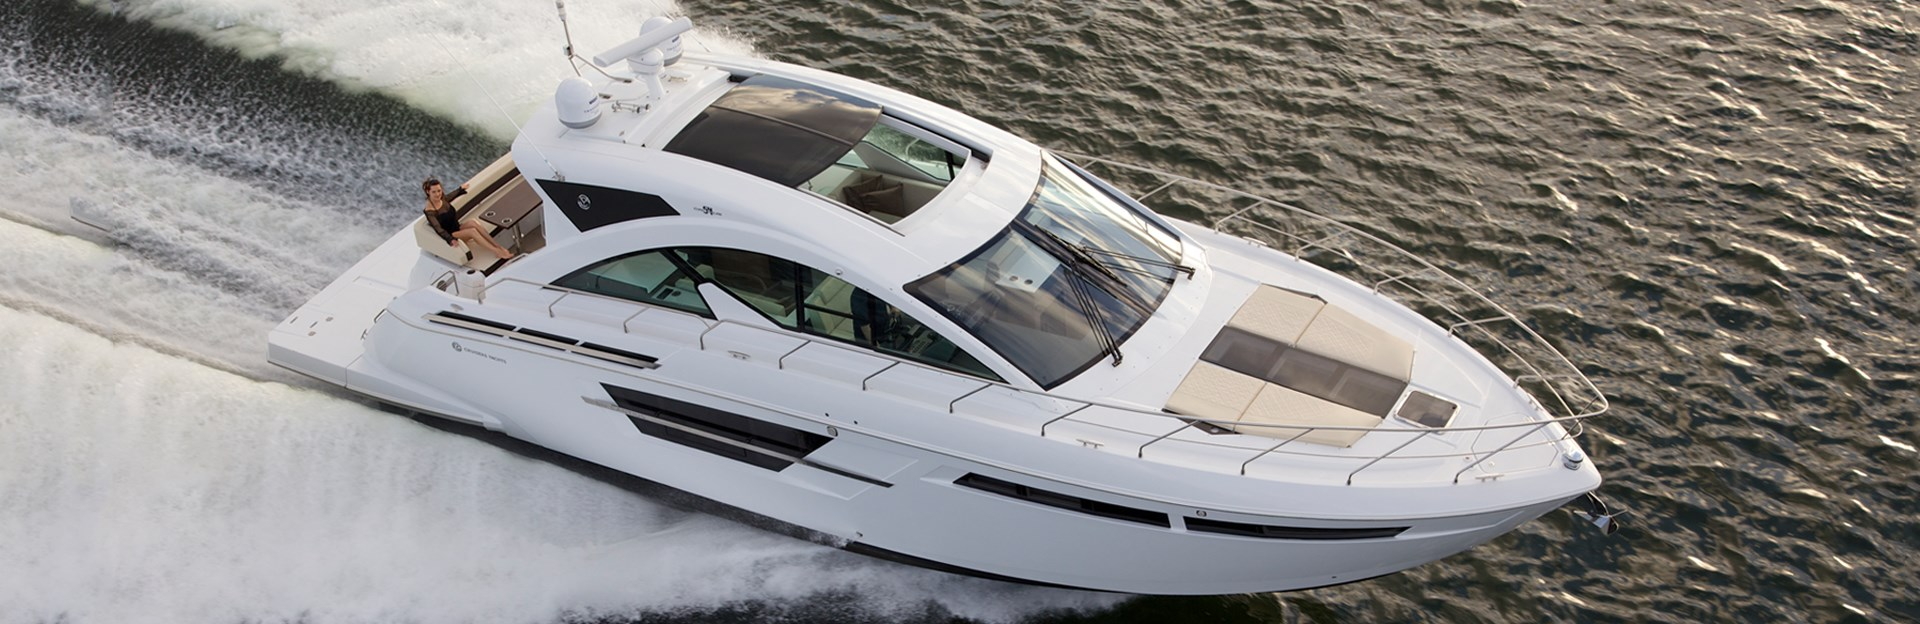 Water Shot of a Cruiser Yachts 54 Cantius